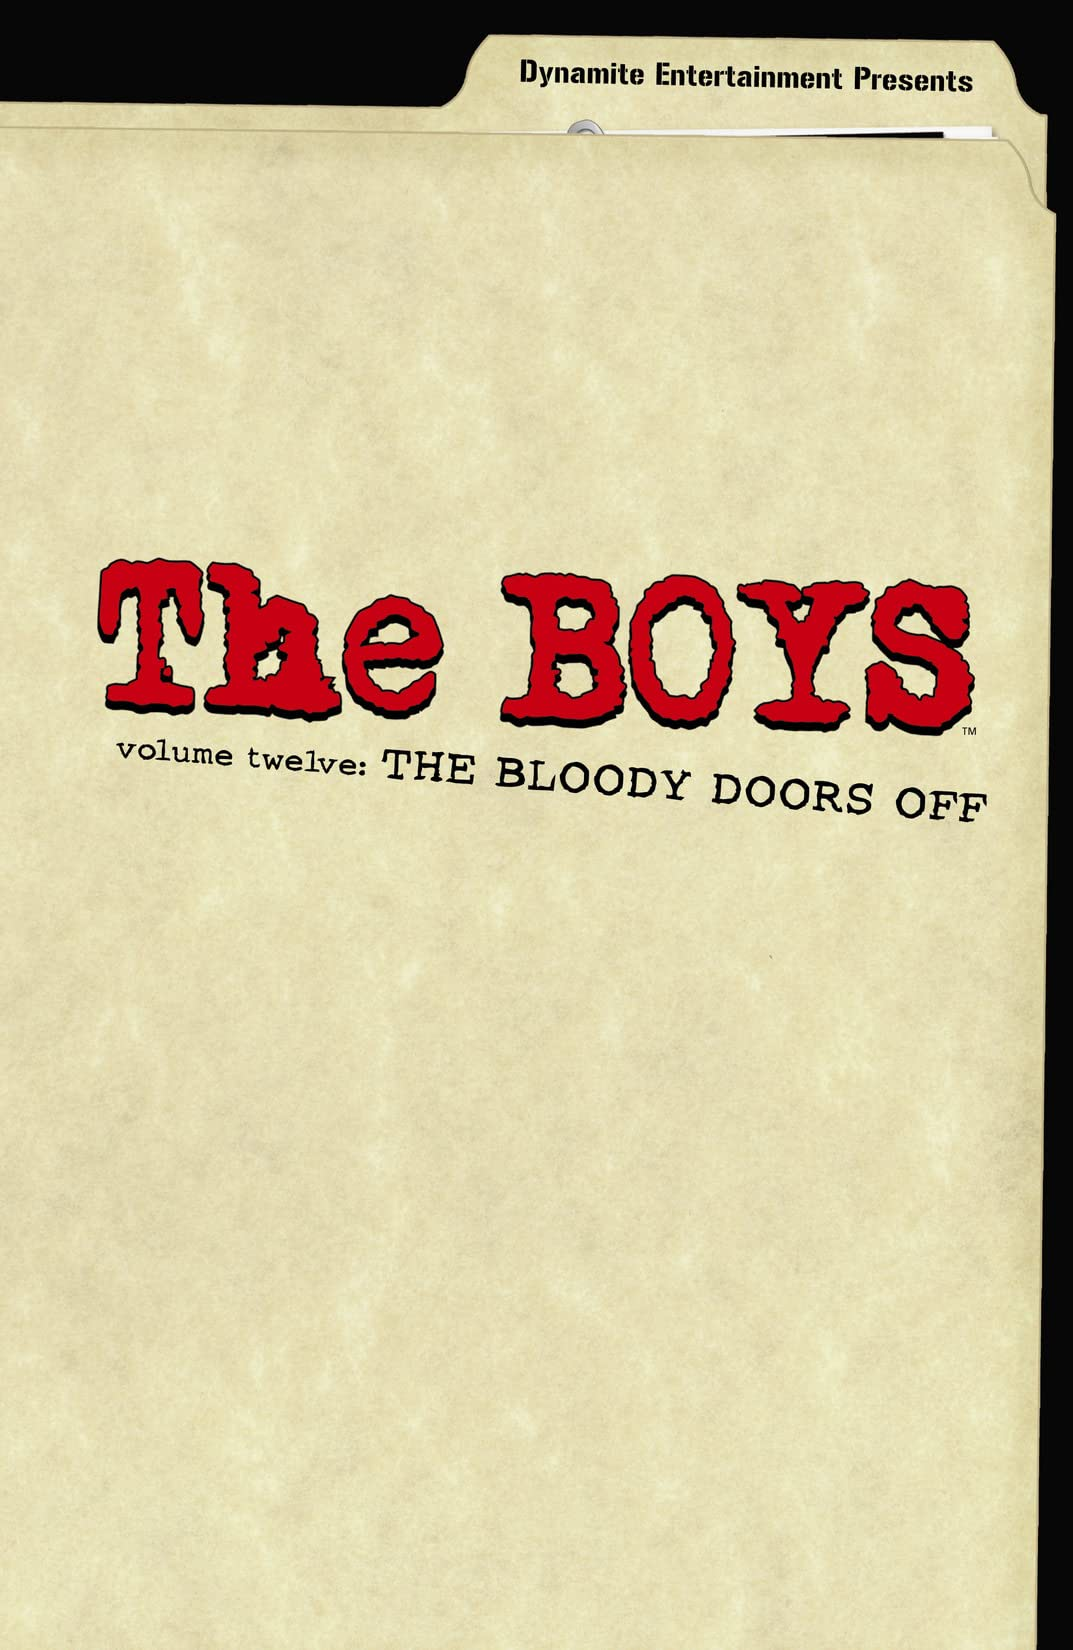 The Boys Vol. 12: The Bloody Doors Off